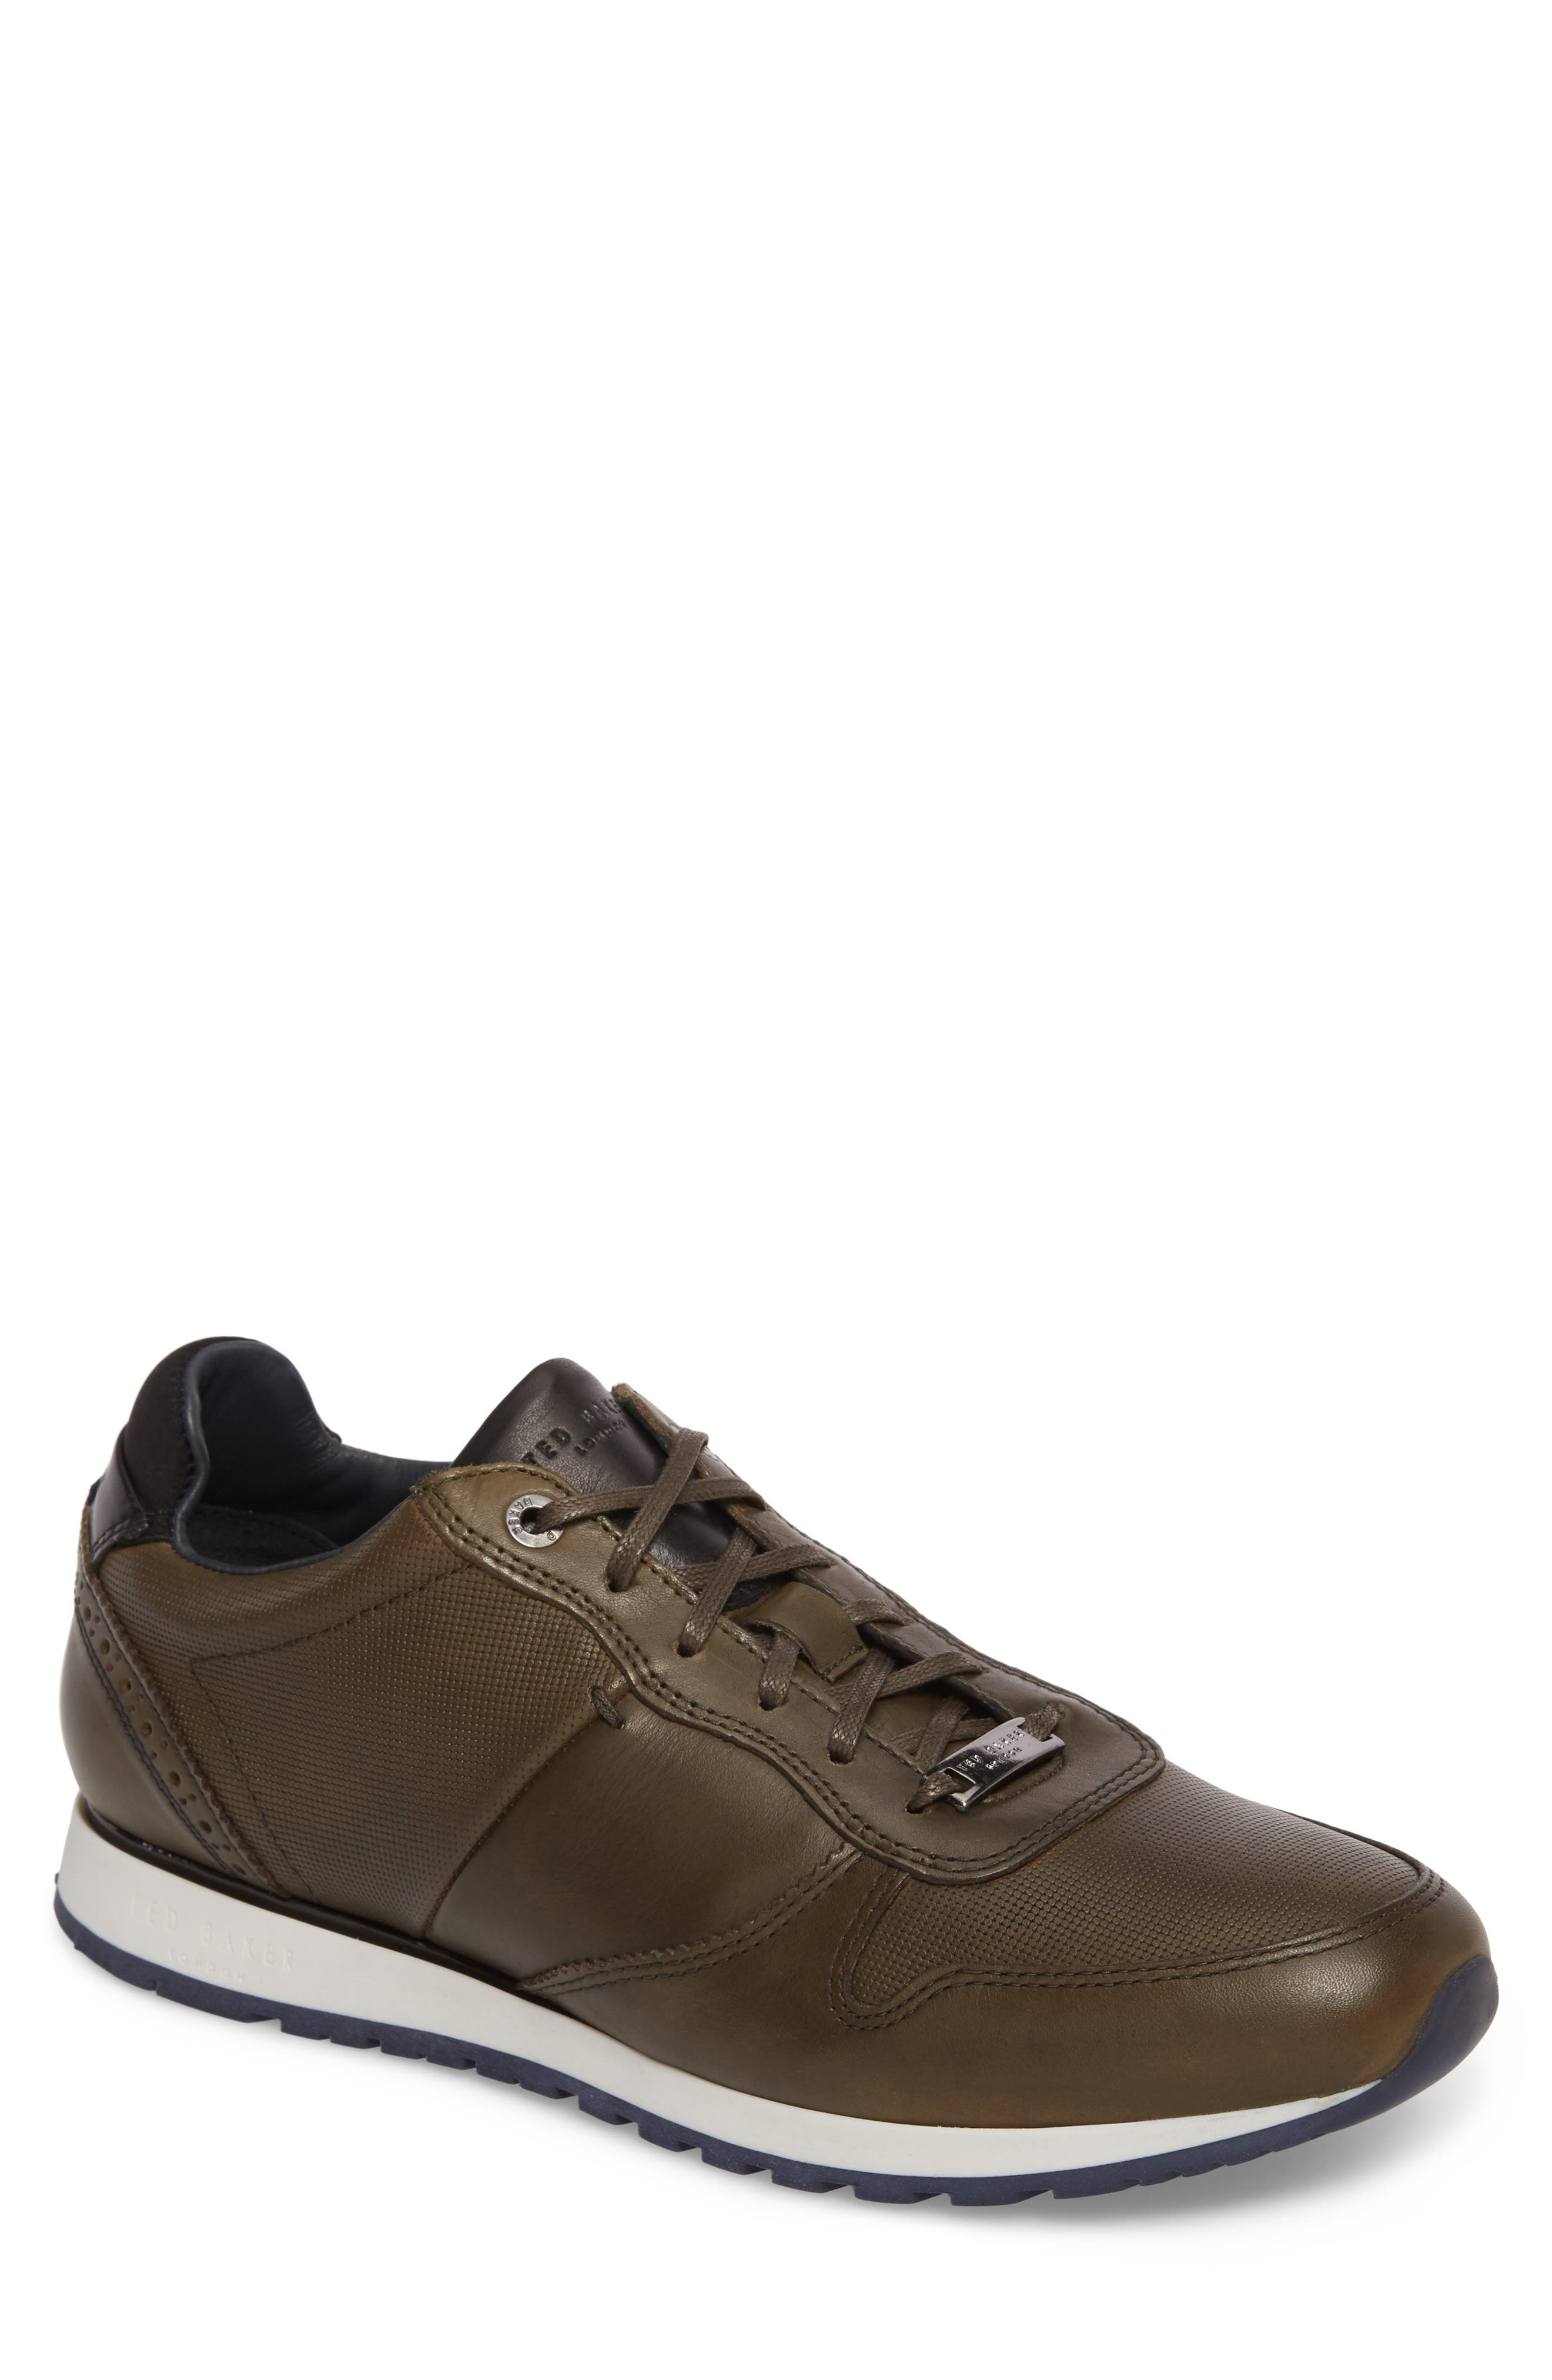 Alternate Image 1 Selected - Ted Baker London Shindl Sneaker (Men)